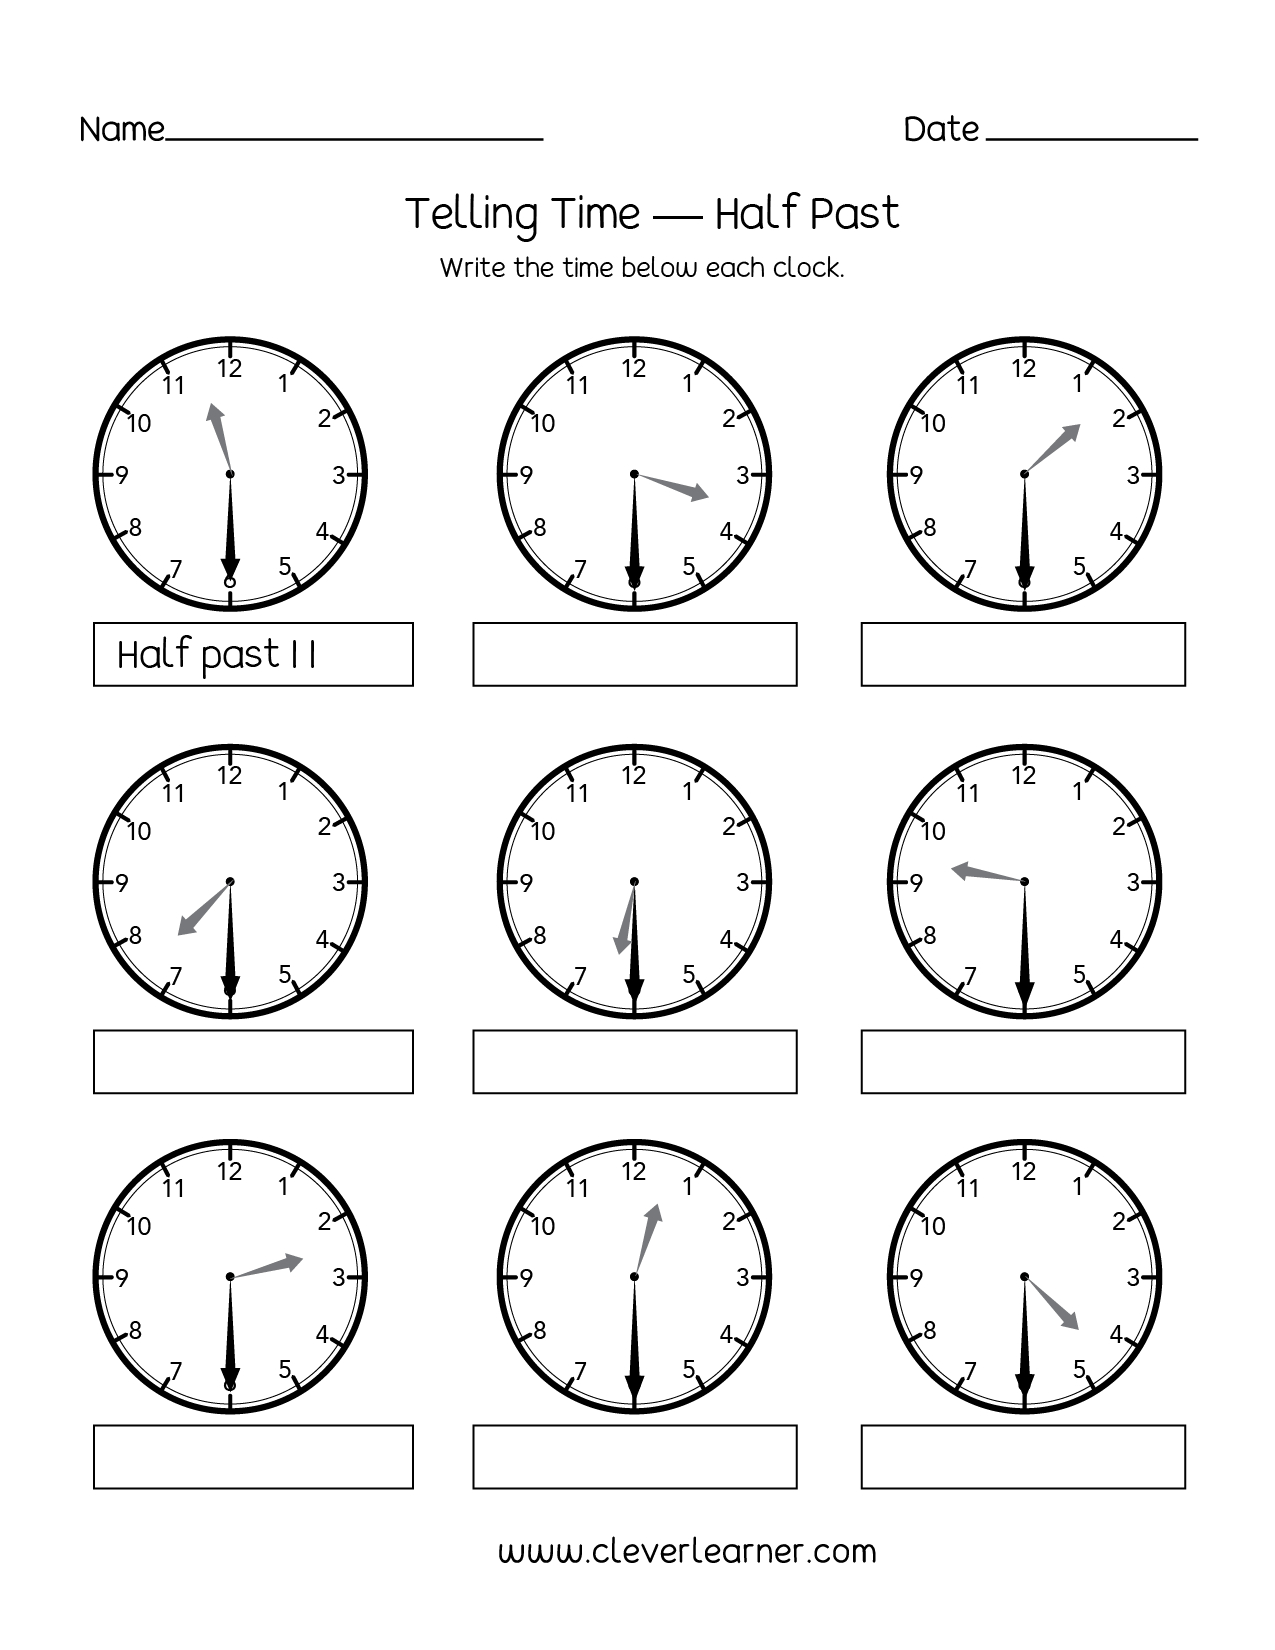 Telling Time Half Past The Hour Worksheets For 1St And 2Nd Graders - Free Printable Telling Time Worksheets For 1St Grade